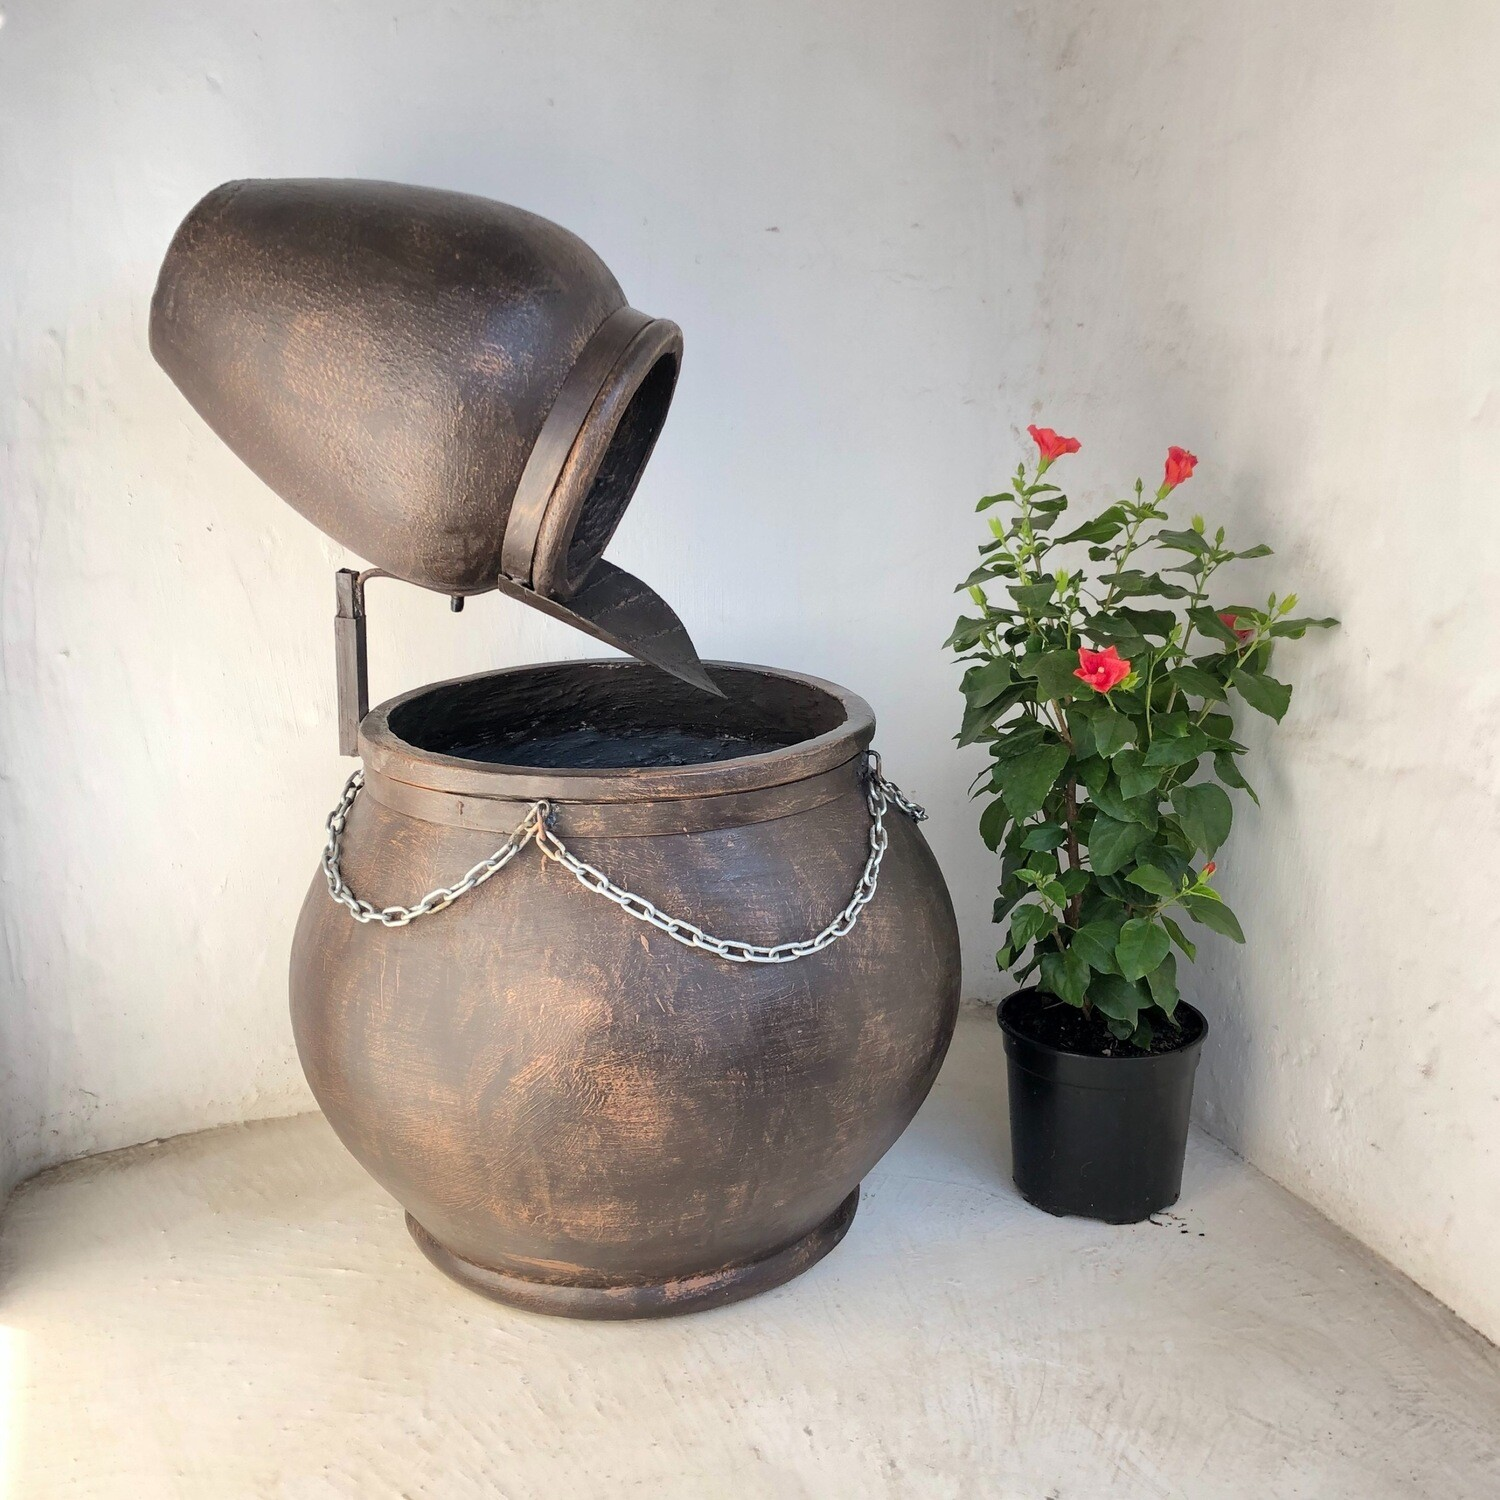 Africana Jeanne Fountain Large Mecca Brown Finish with Steel & Chain - H1100mm x W730mm - 57kg